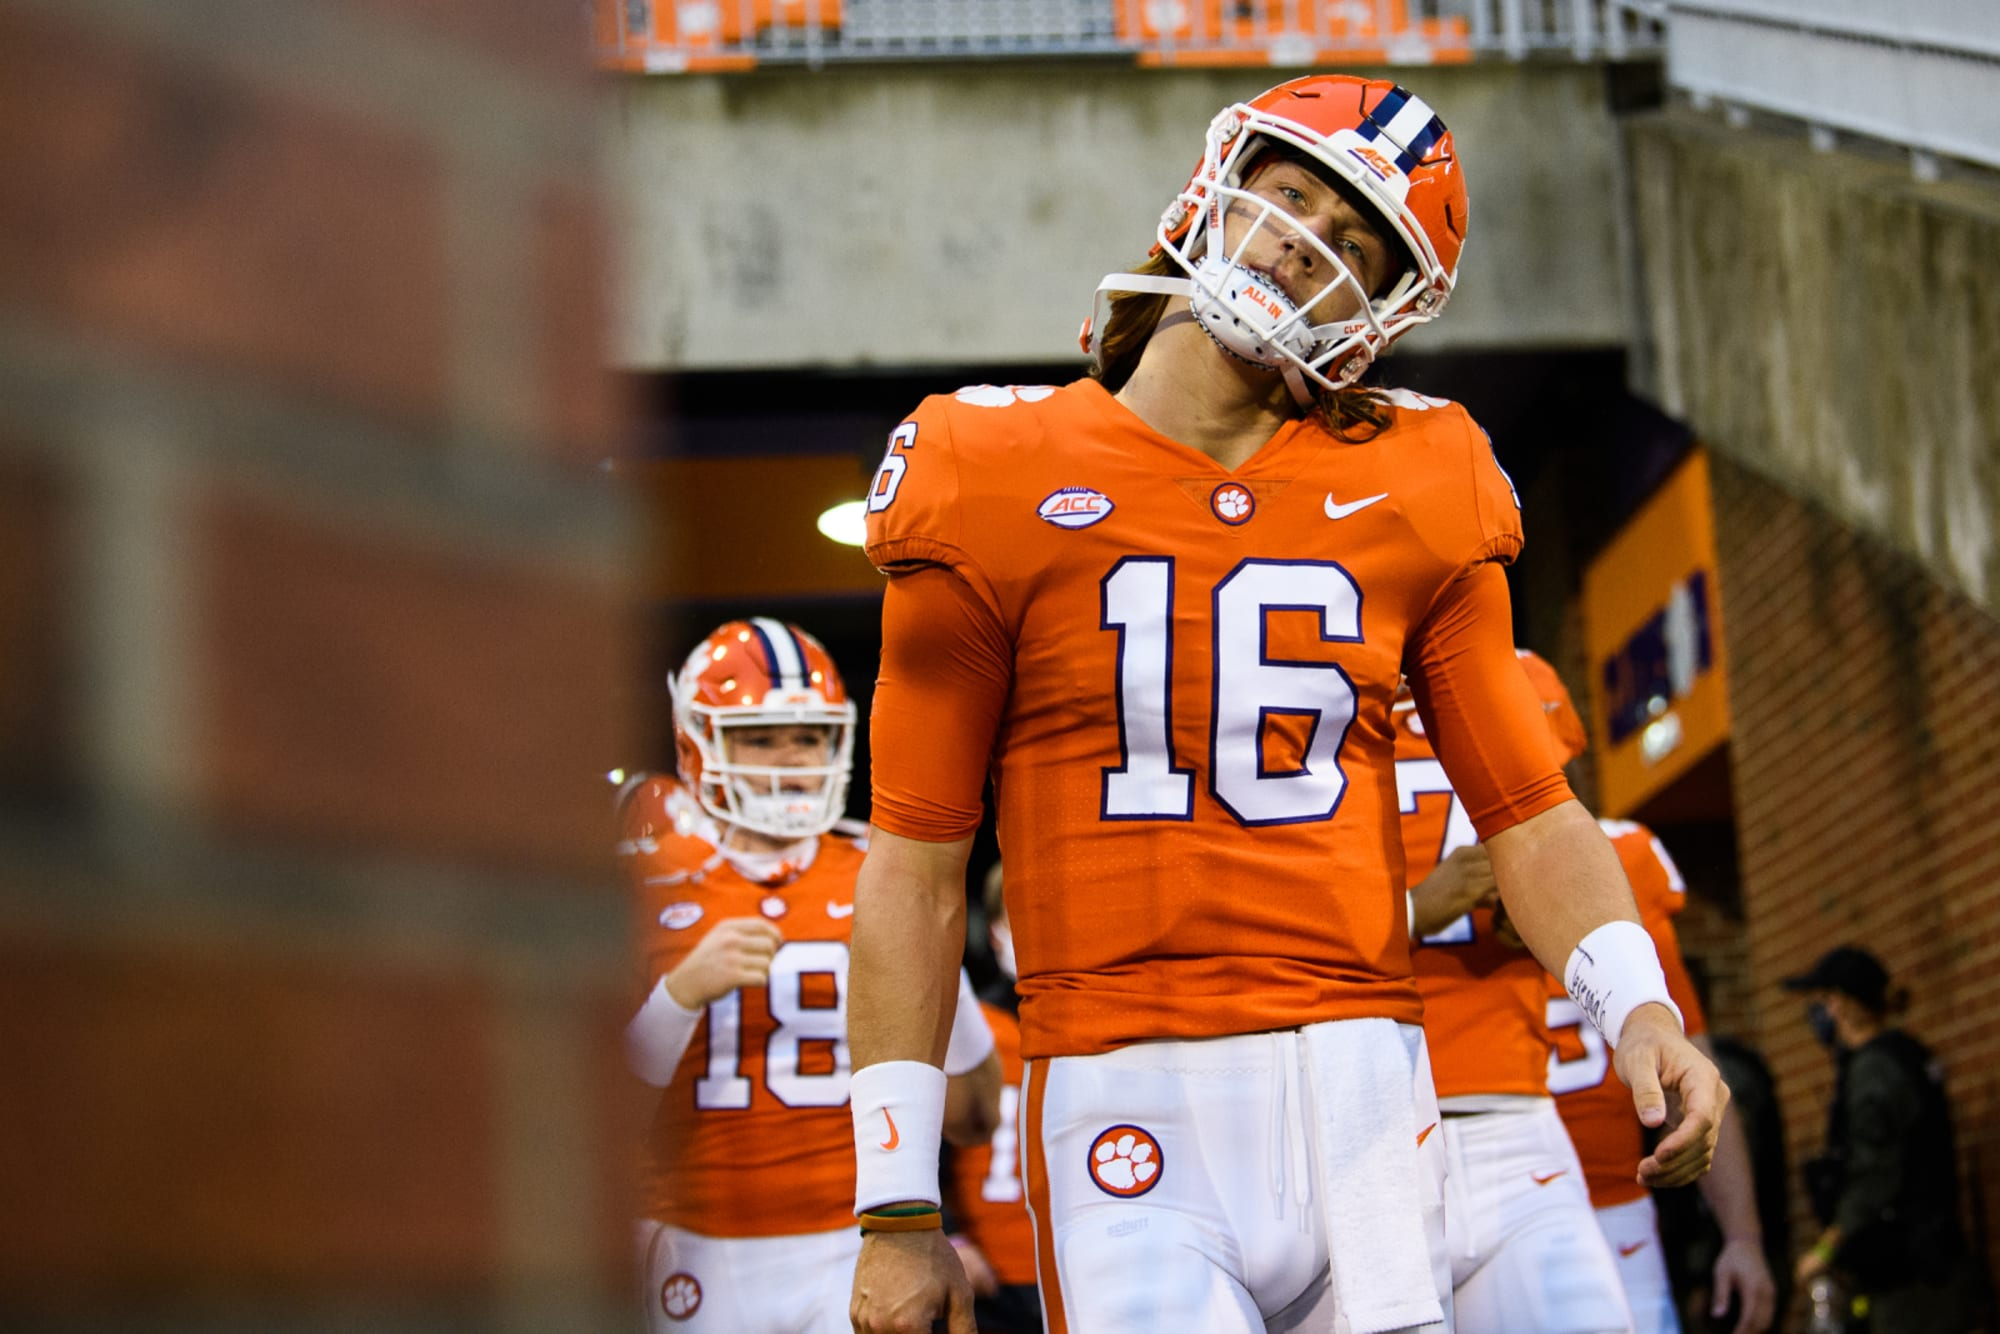 Trevor Lawrence being advised to (possibly) return to Clemson